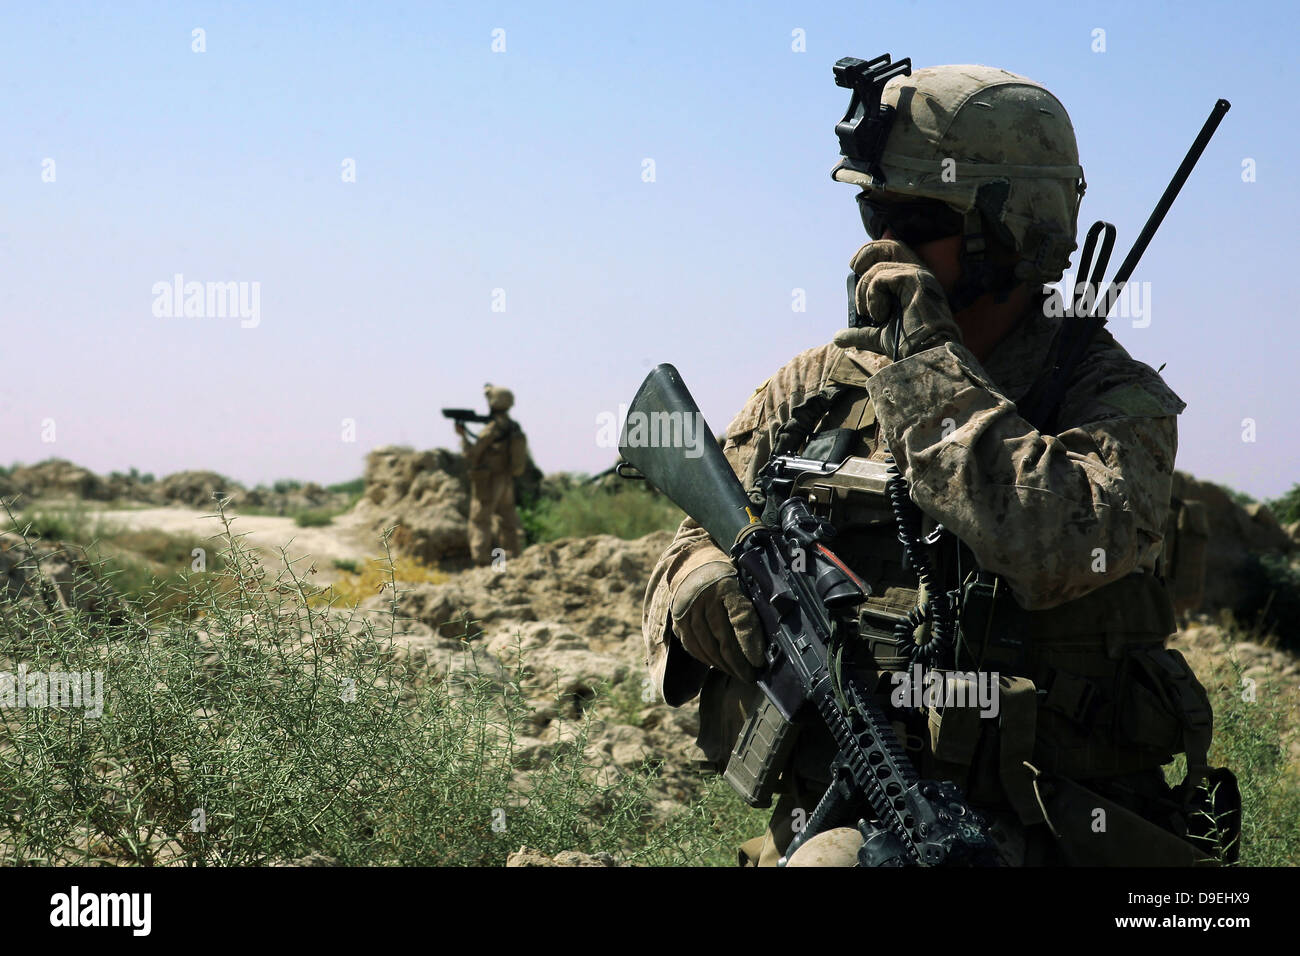 July 27, 2009 - U.S. Marine uses a radio during a security patrol in the Helmand province of Afghanistan. - Stock Image